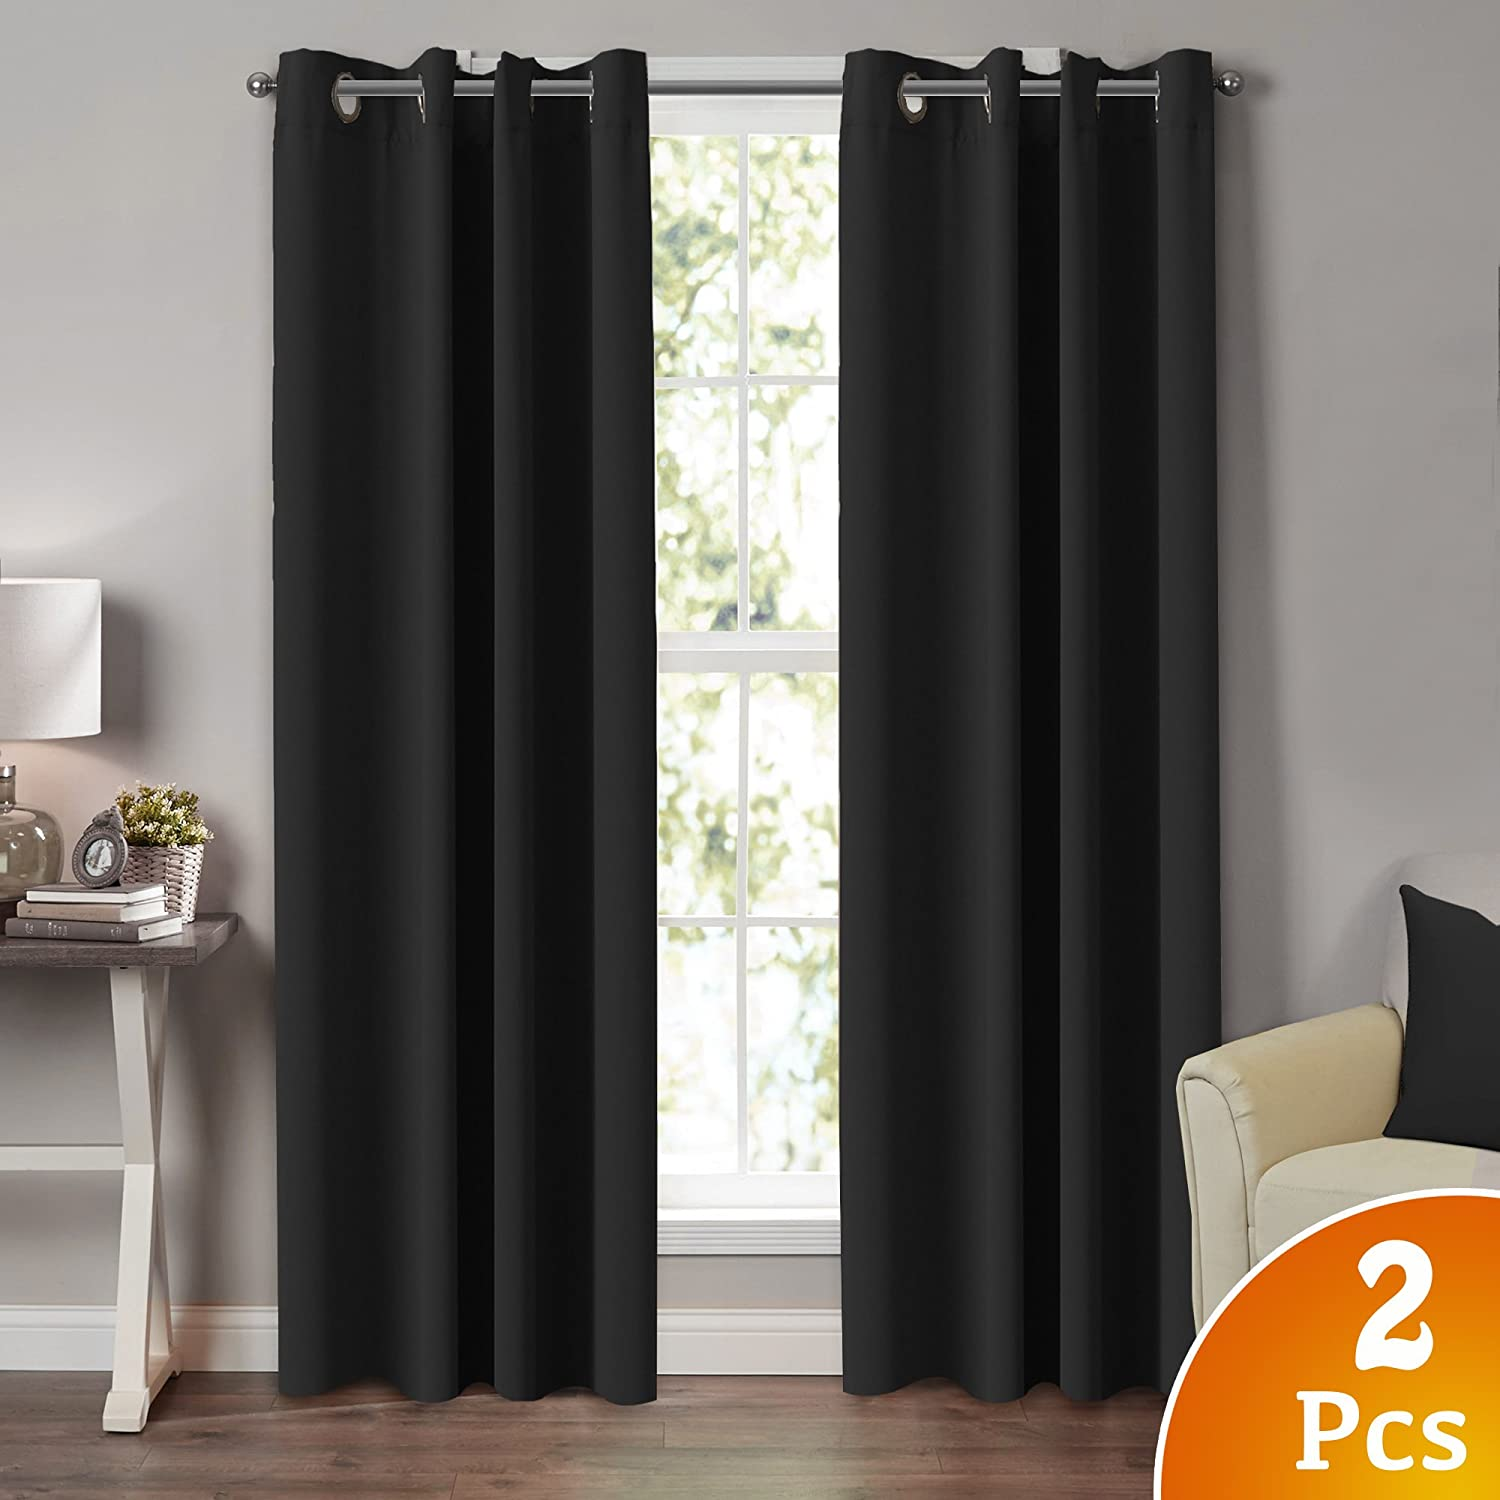 TURQUOIZE 2 Panels Solid Blackout Drapes, Jet Black, Themal Insulated, Grommet/Eyelet Top, Nursery/Living Room Curtains